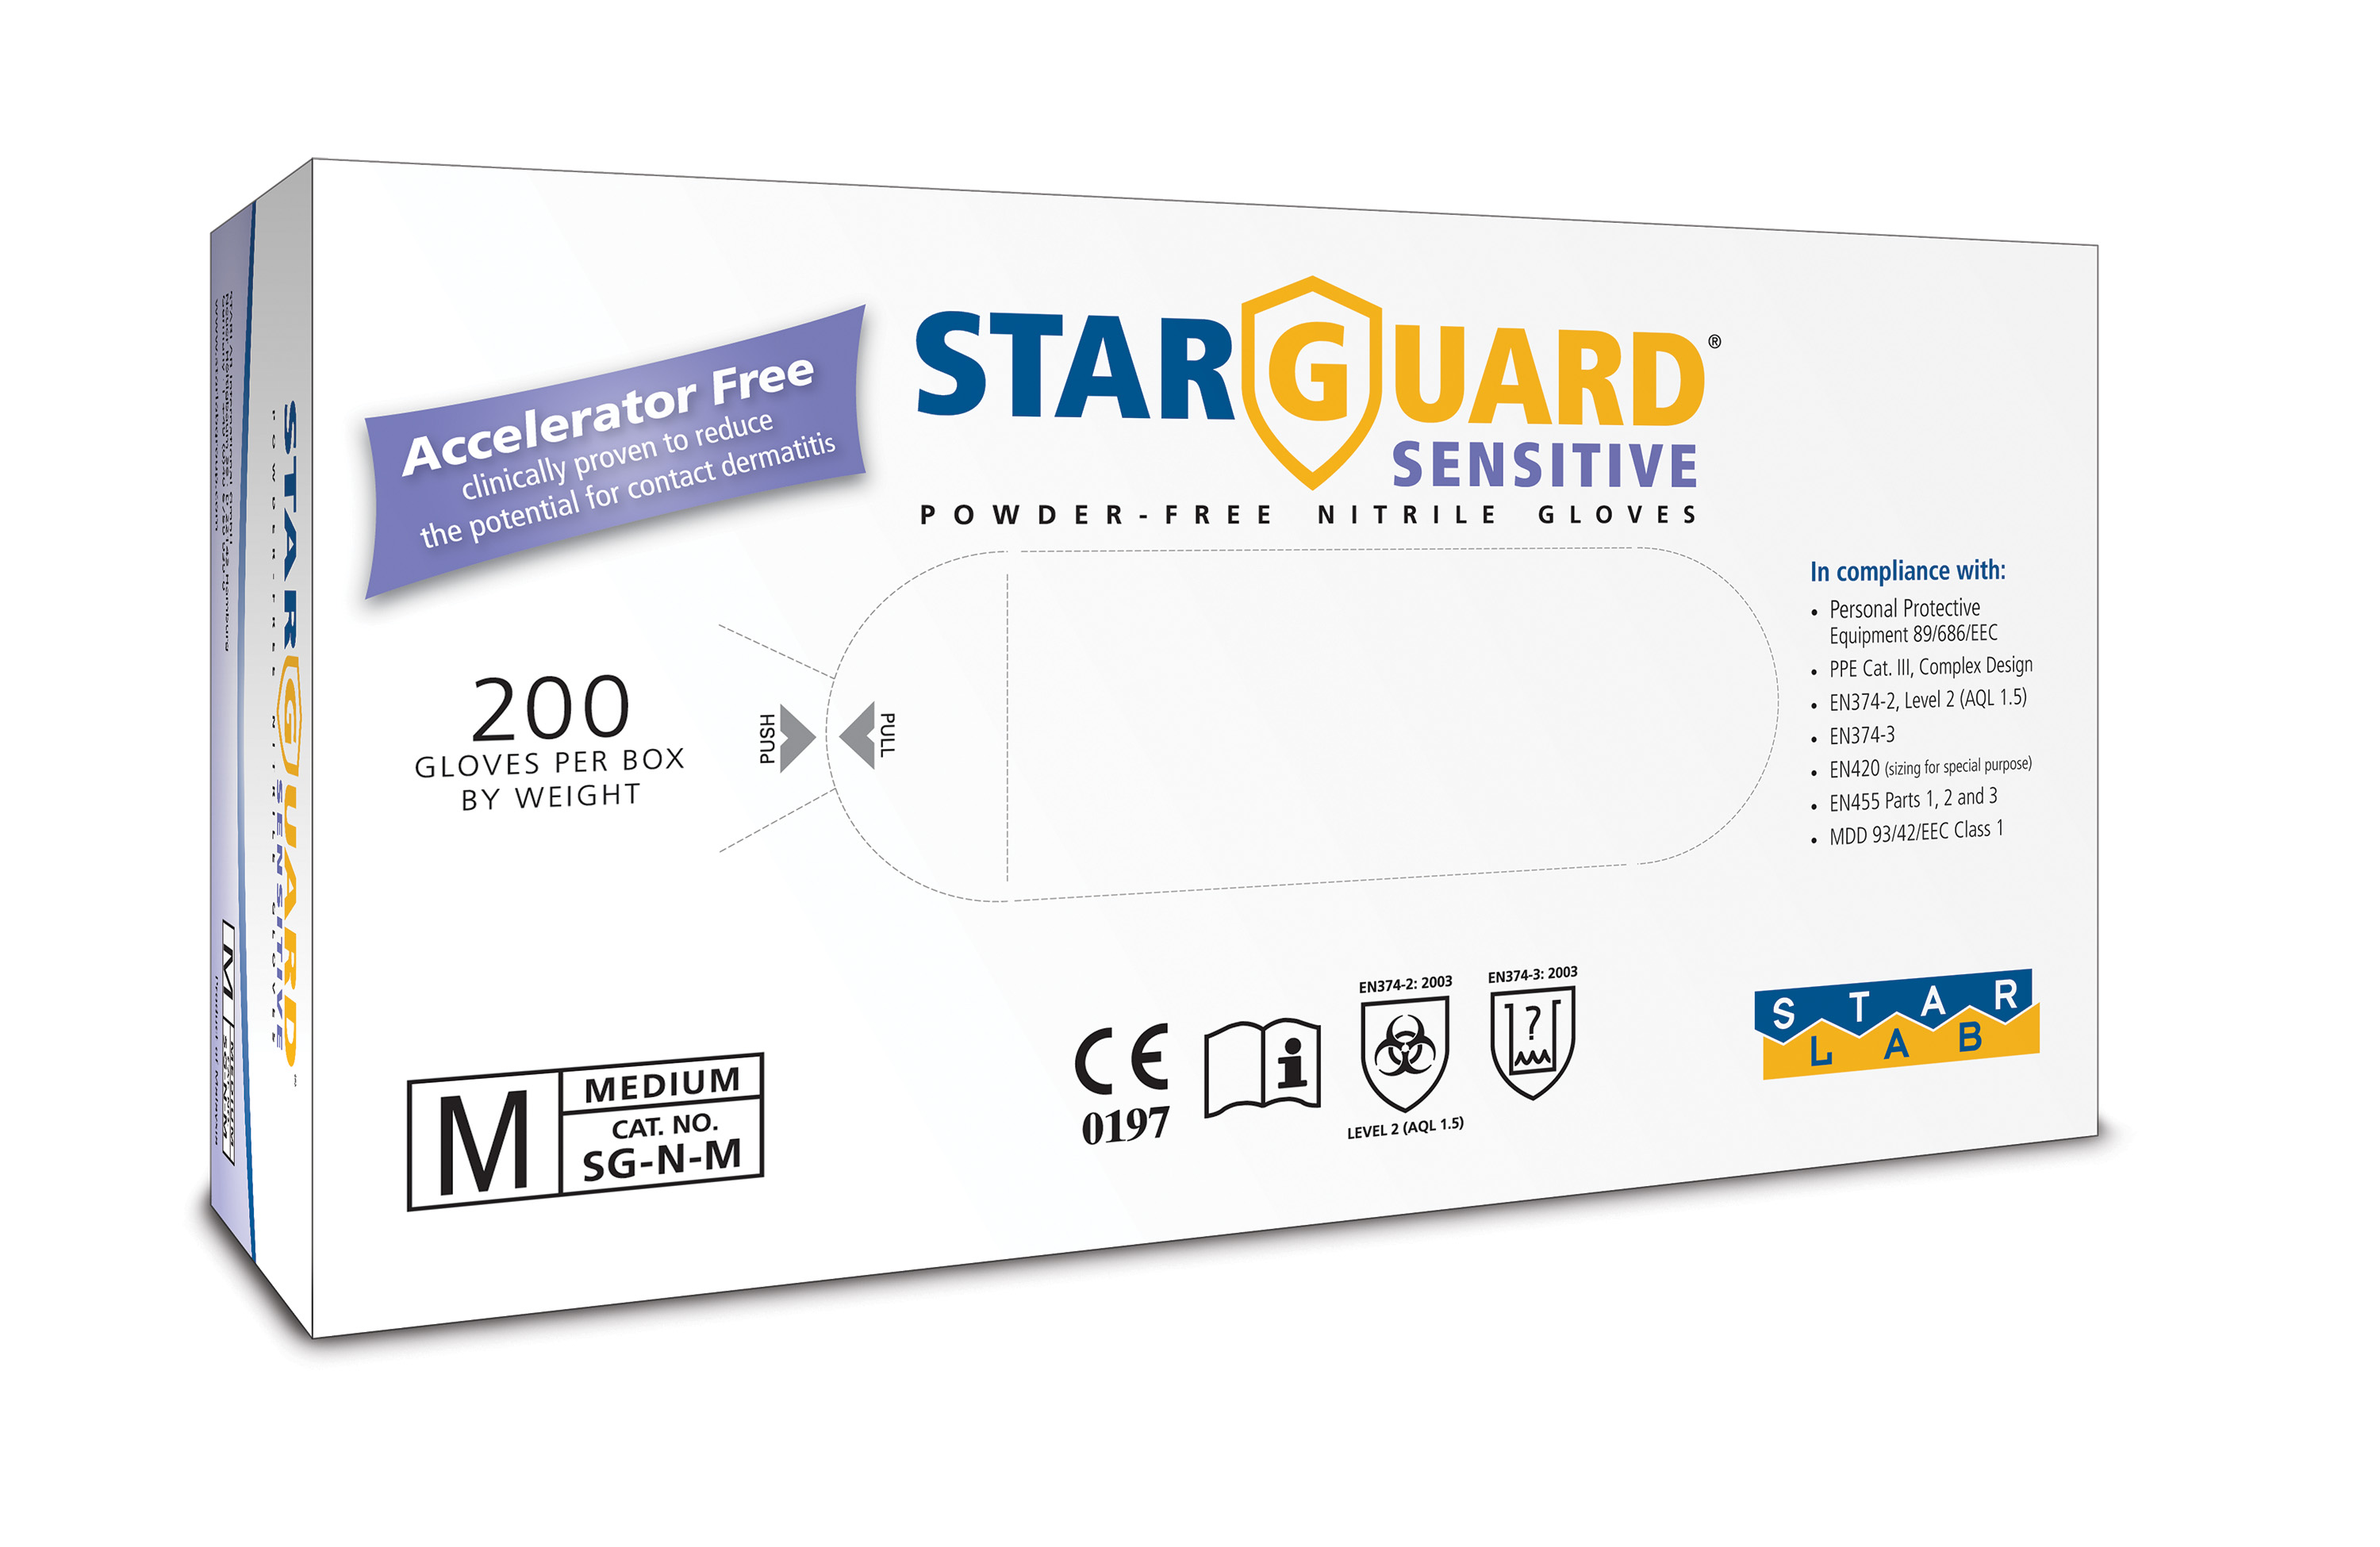 StarGuard SENSITIVE Nitrile Gloves, Powder Free, Blue, Size S, Pk/ 10 x 200 gloves - just sFr. 8,80/100 gloves